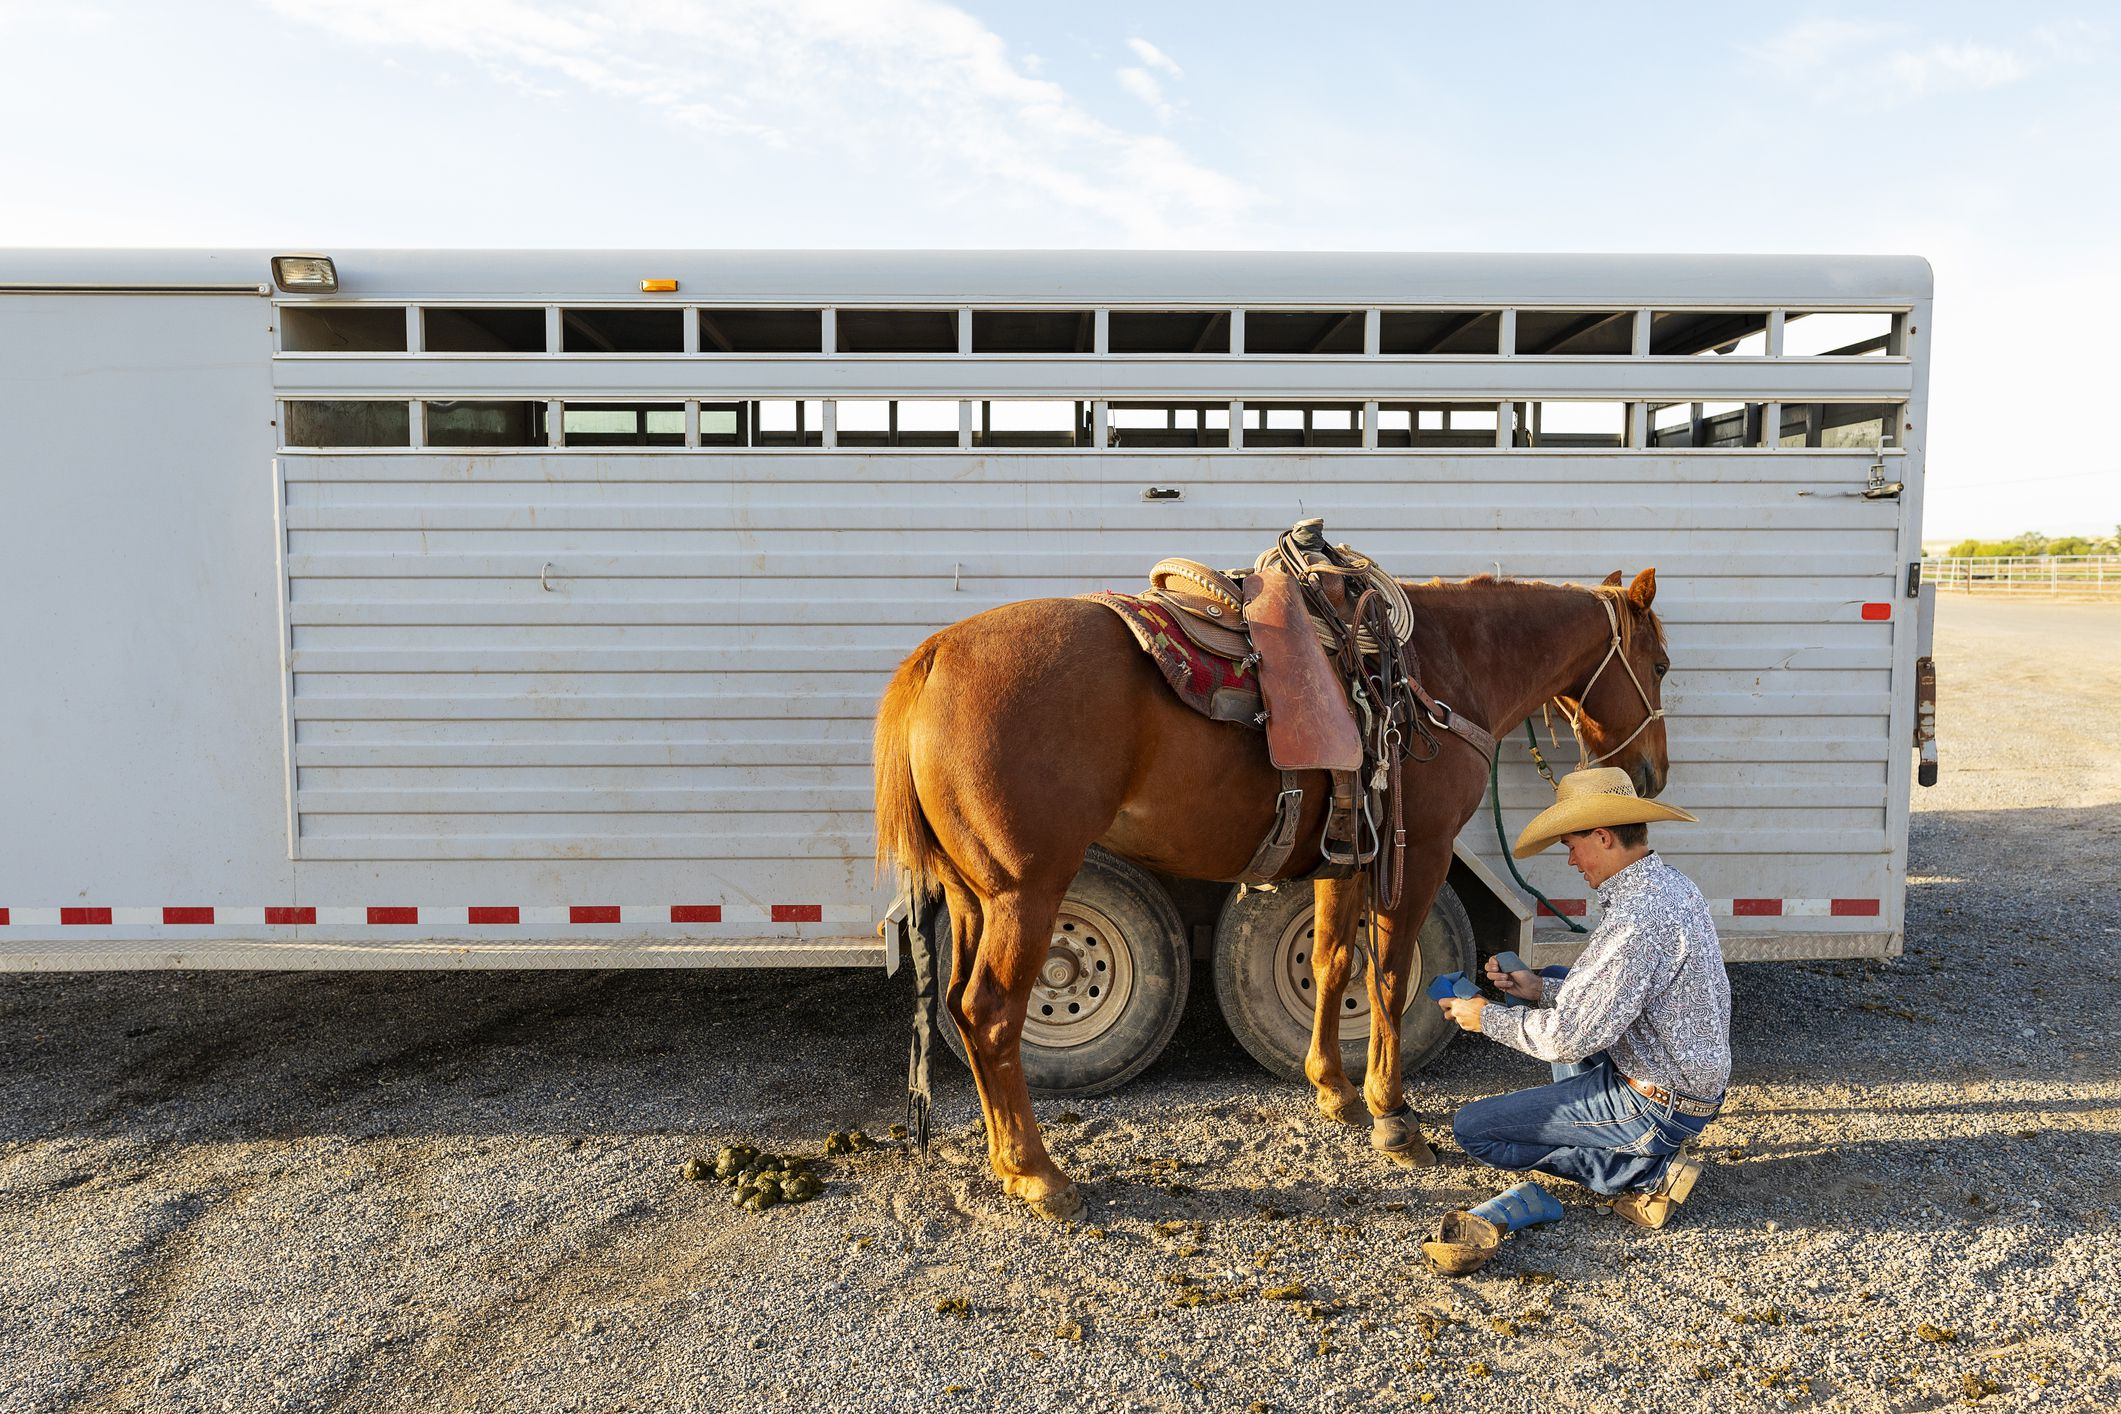 Aluminum trailer behind horse and owner